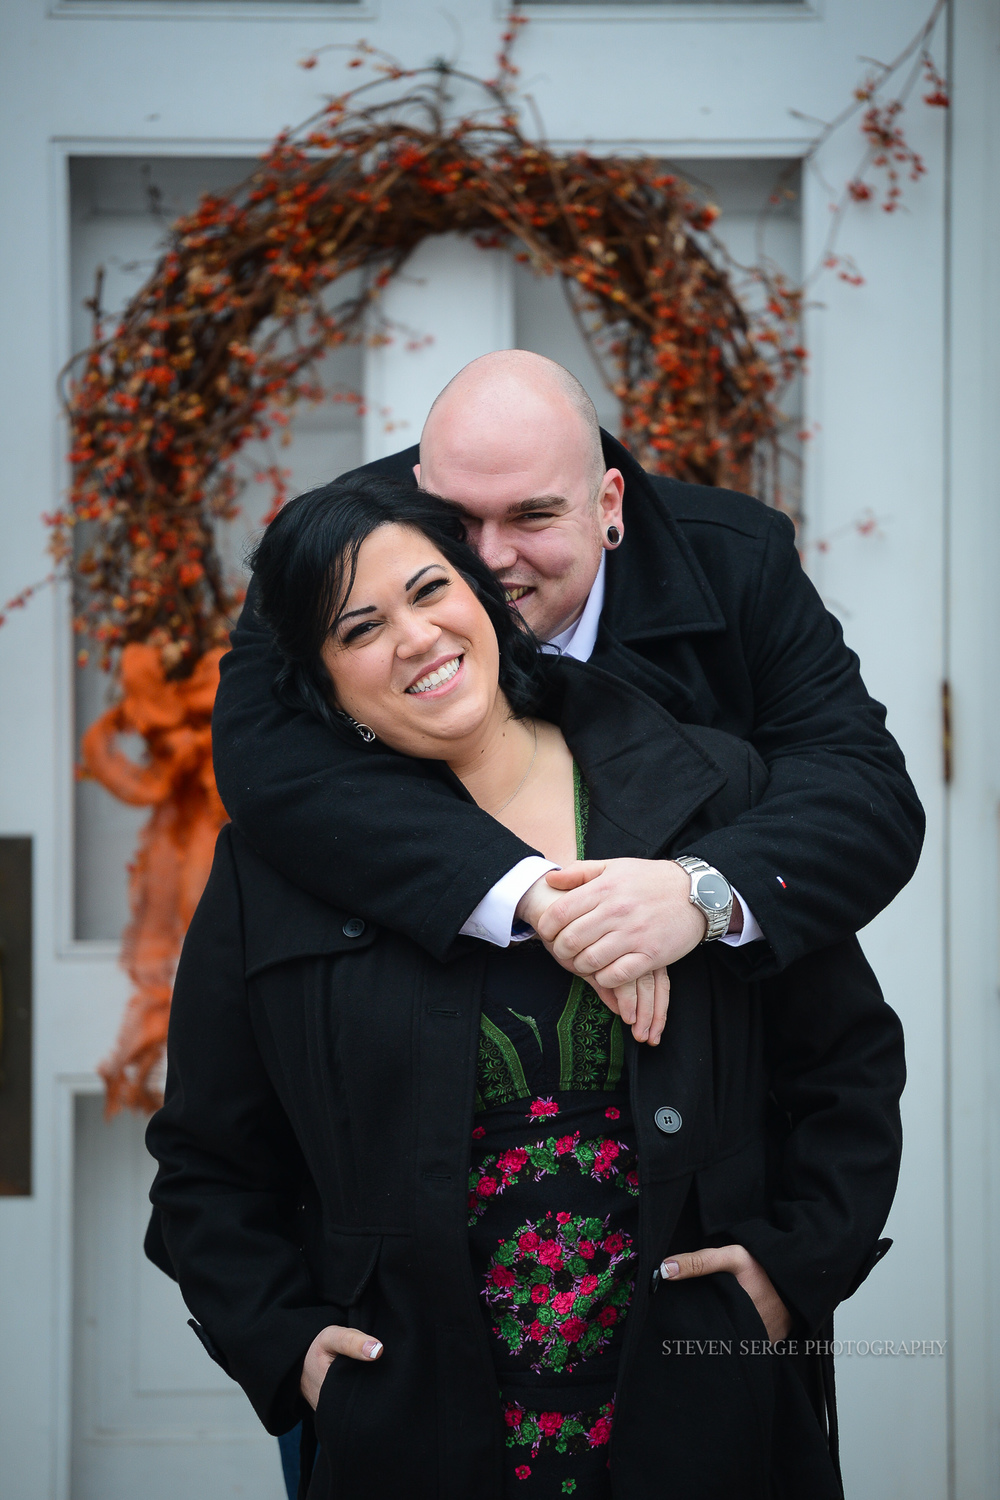 Rosa-NEPA-Wedding-Engagement-Photographer-Waverly-Clarks-Summit-Scranton-Photographer-22.jpg